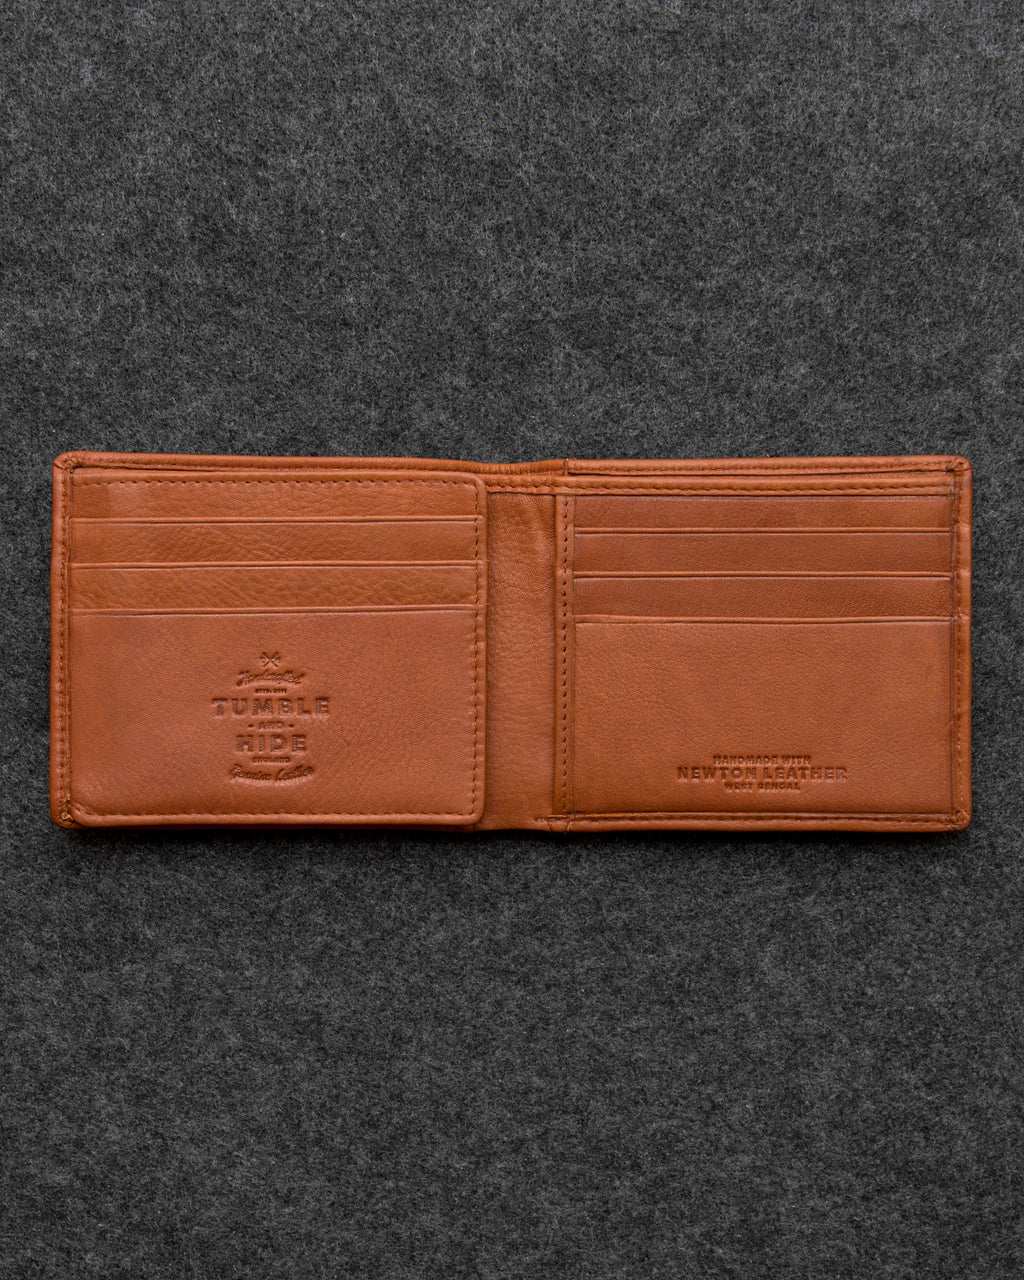 Tumble and Hide Newton Leather Journey Wallet Tan a